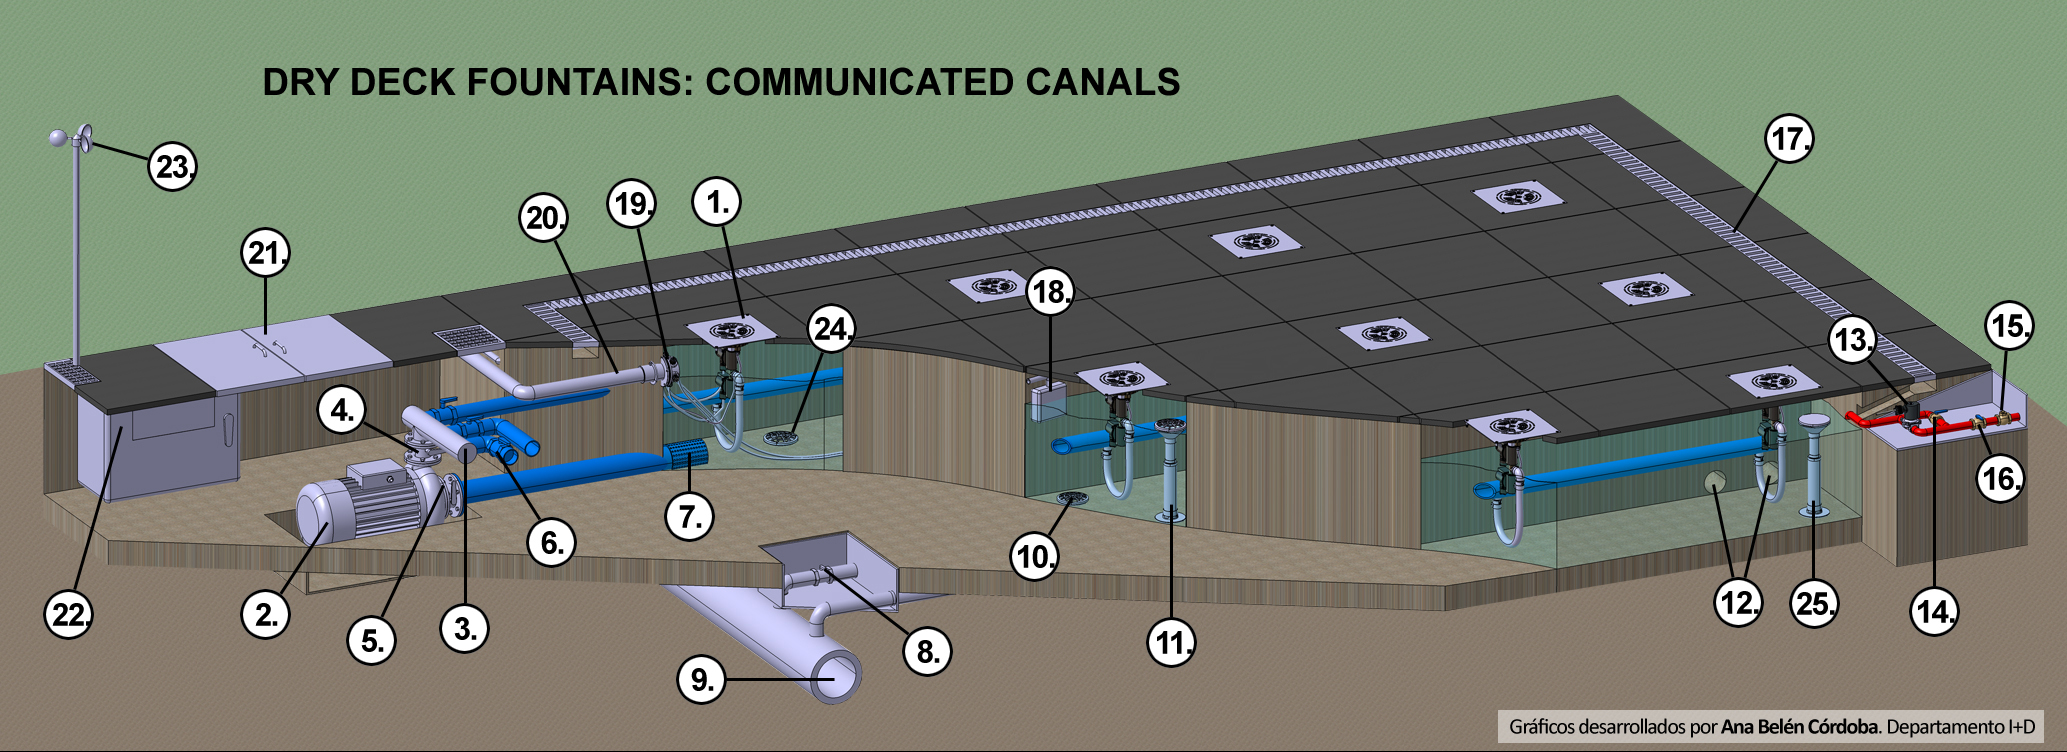 Installation of dry fountain with communicated canals